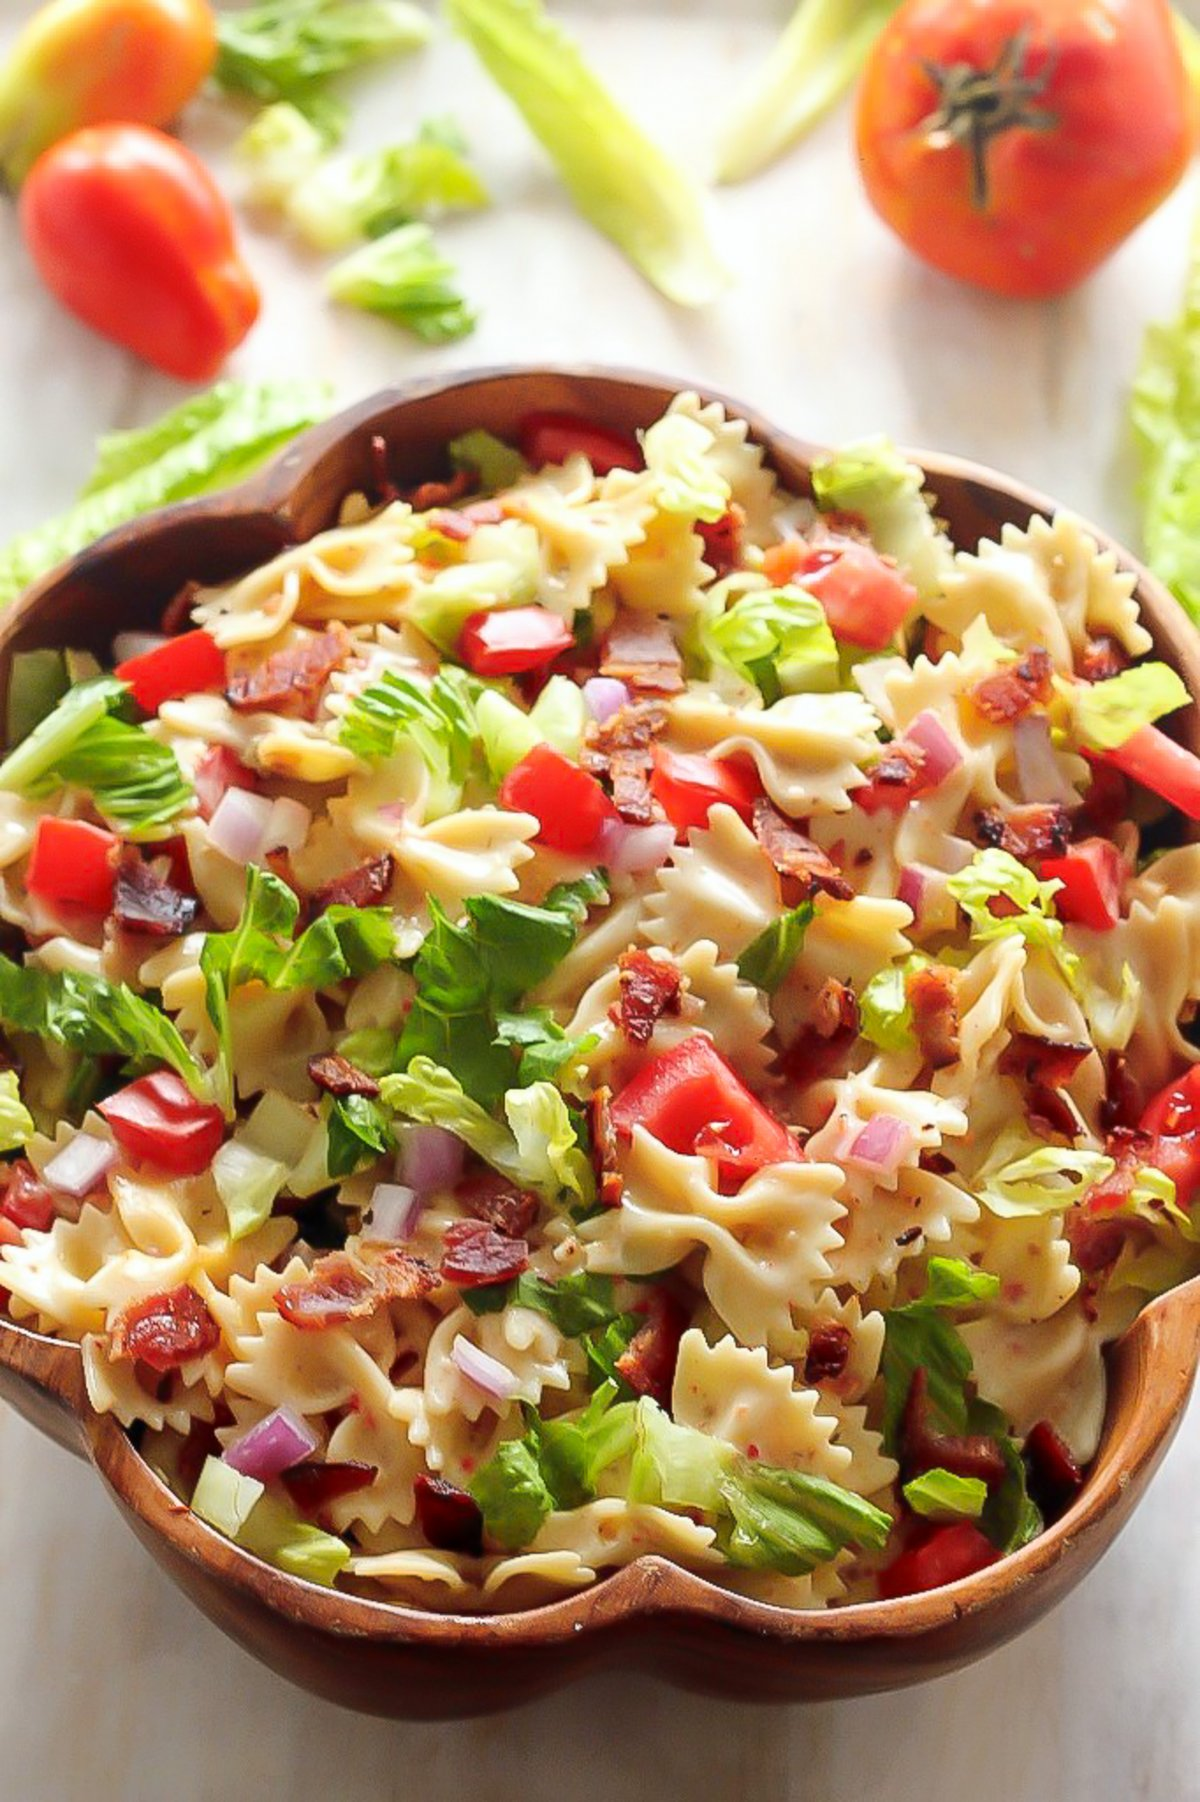 55b98135ab16 20-Minute BLT Easy Pasta Salad - Baker by Nature